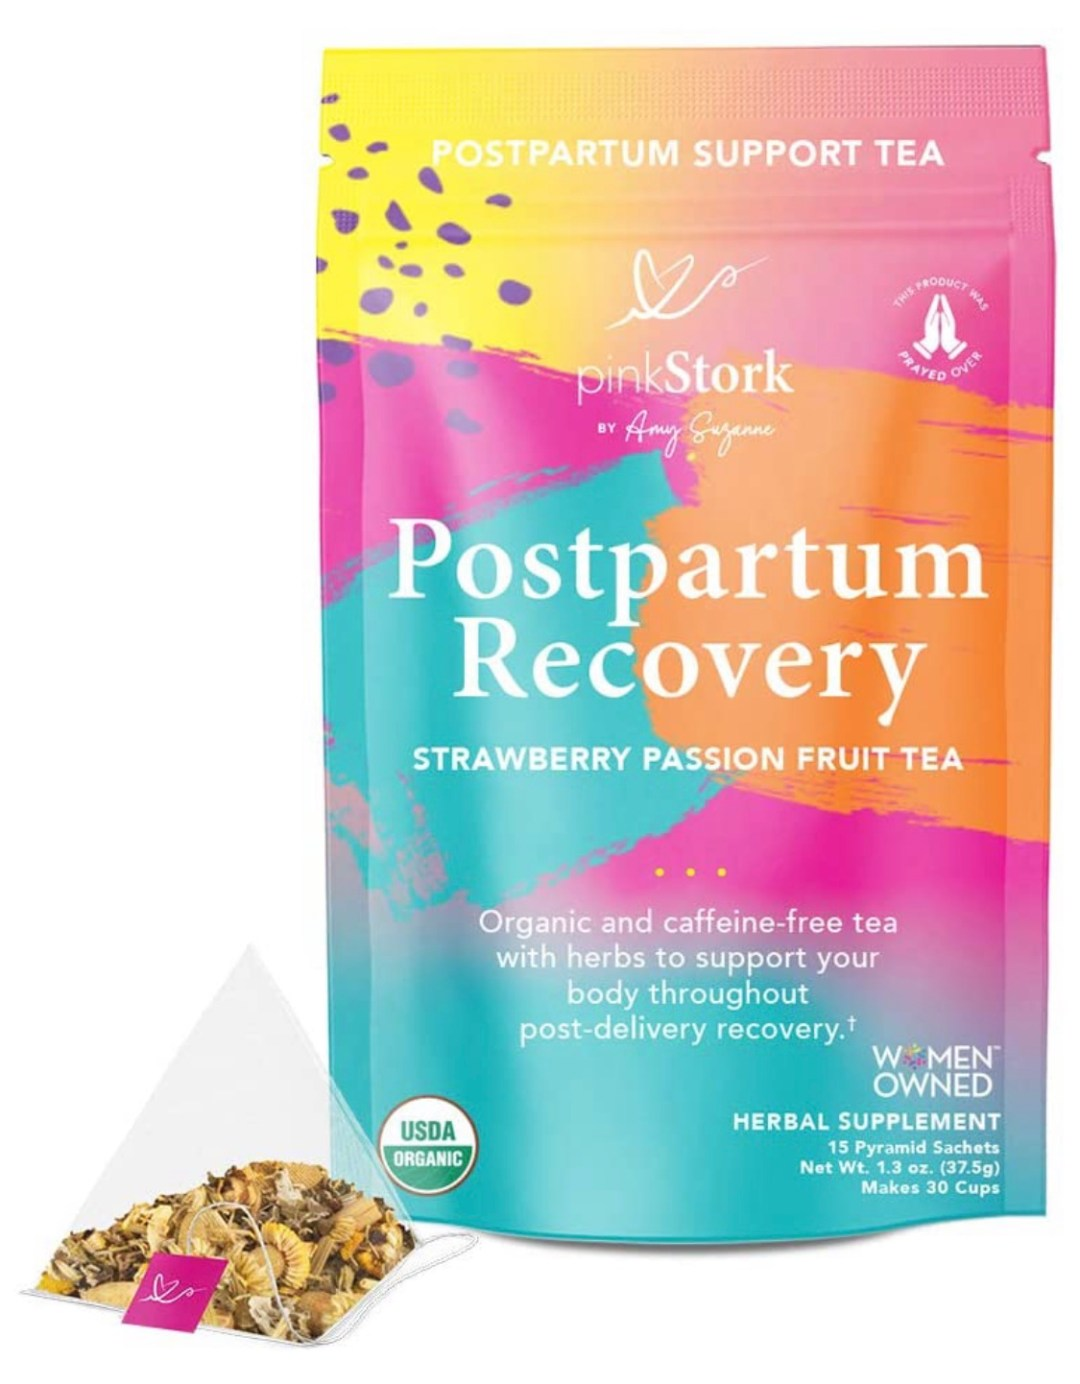 Pink Stork Postpartum Recovery Tea